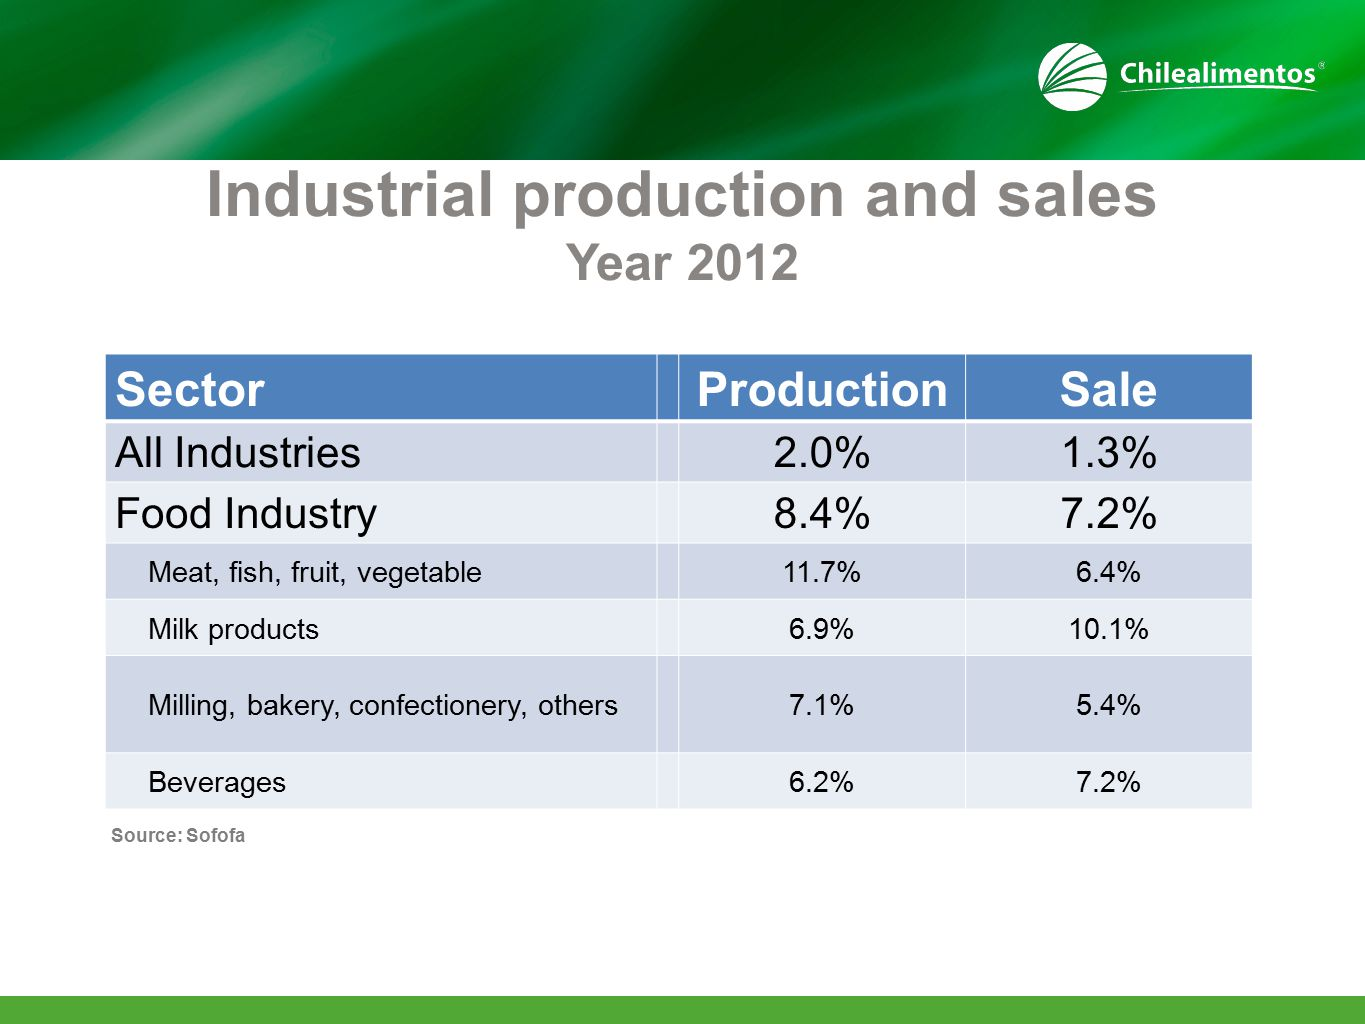 Source: Sofofa Industrial production and sales Year 2012 SectorProductionSale All Industries2.0%1.3% Food Industry8.4%7.2% Meat, fish, fruit, vegetable11.7%6.4% Milk products6.9%10.1% Milling, bakery, confectionery, others7.1%5.4% Beverages6.2%7.2%